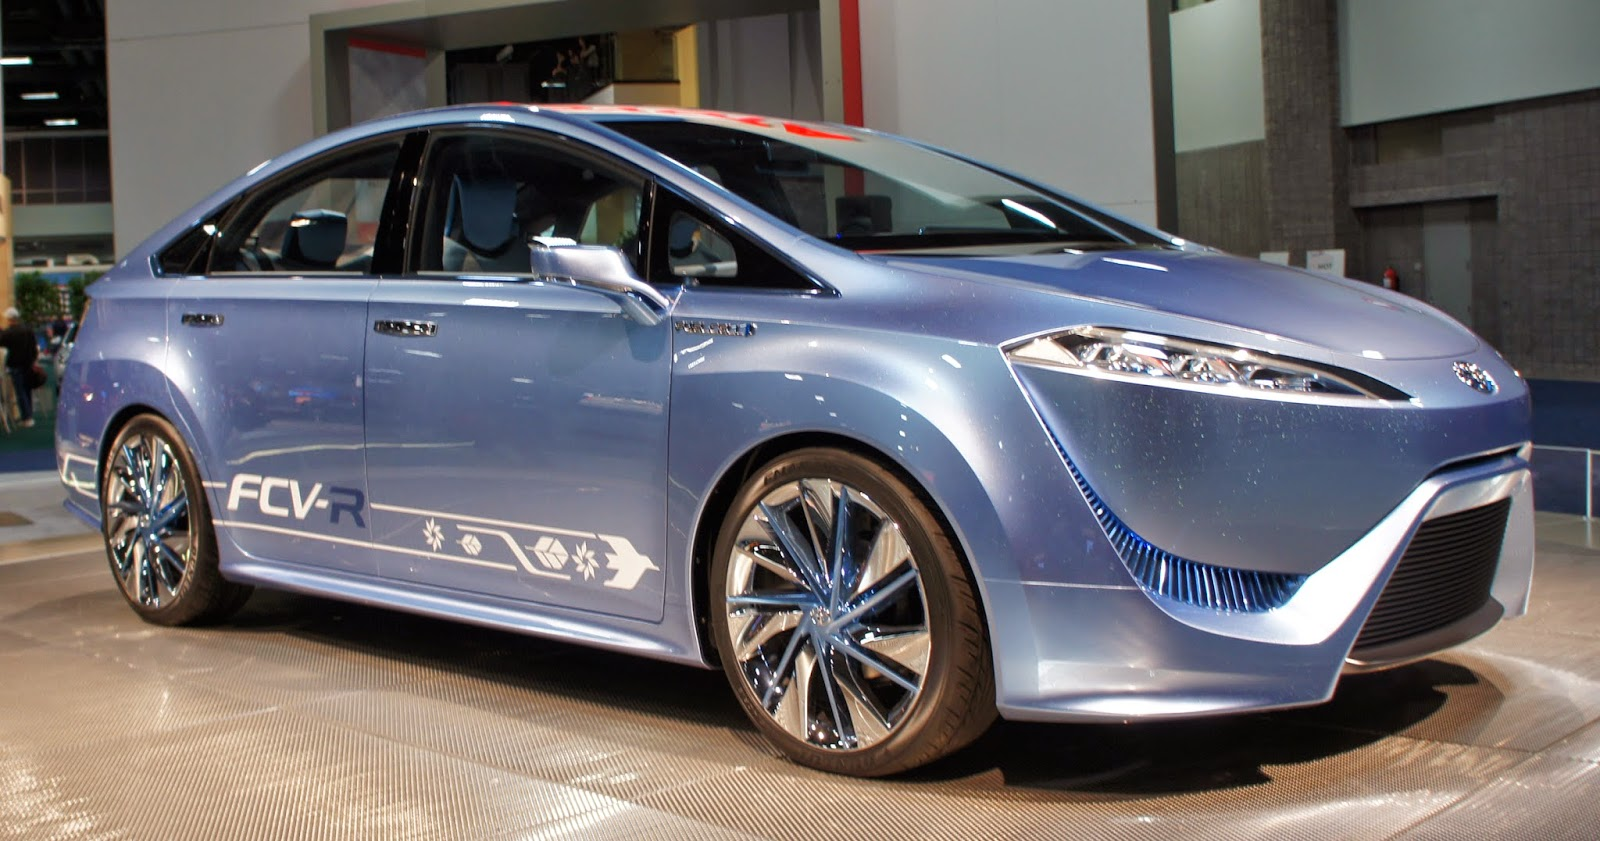 The Toyota FCV-R concept car was exhibited at the 2012 Washington Auto Show.